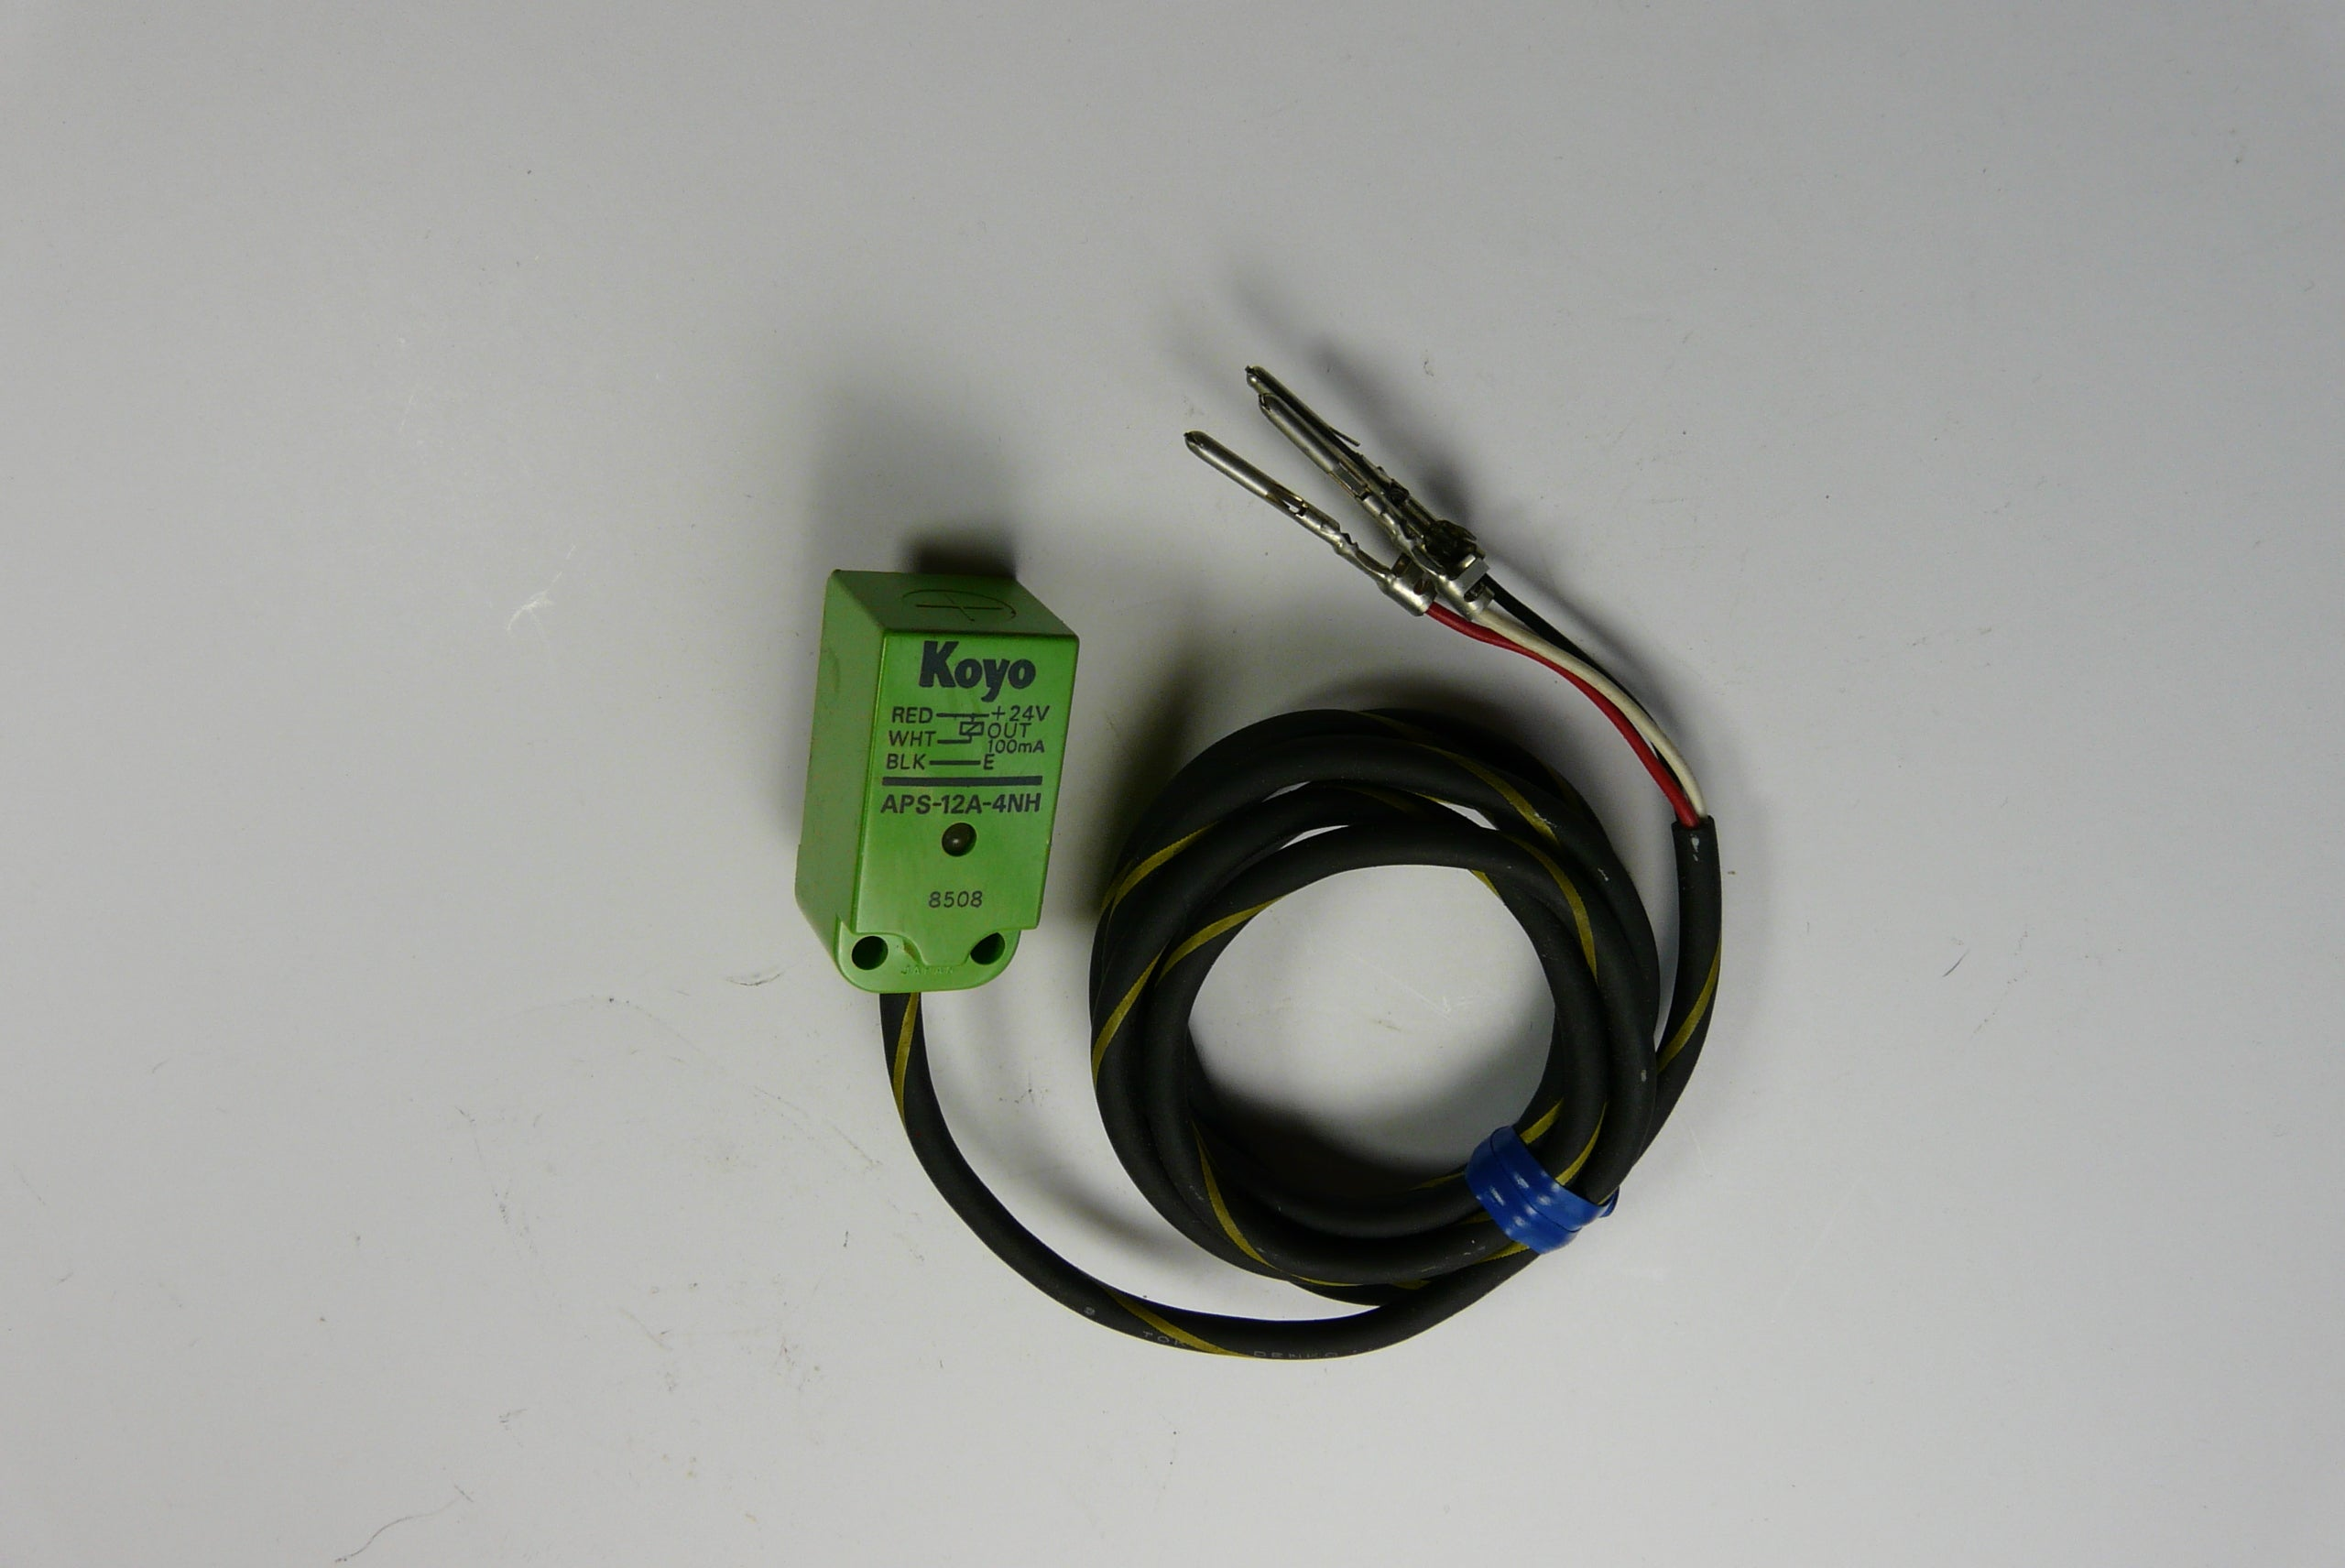 Koyo  Proximity Switch Part# APS-12A-4NH